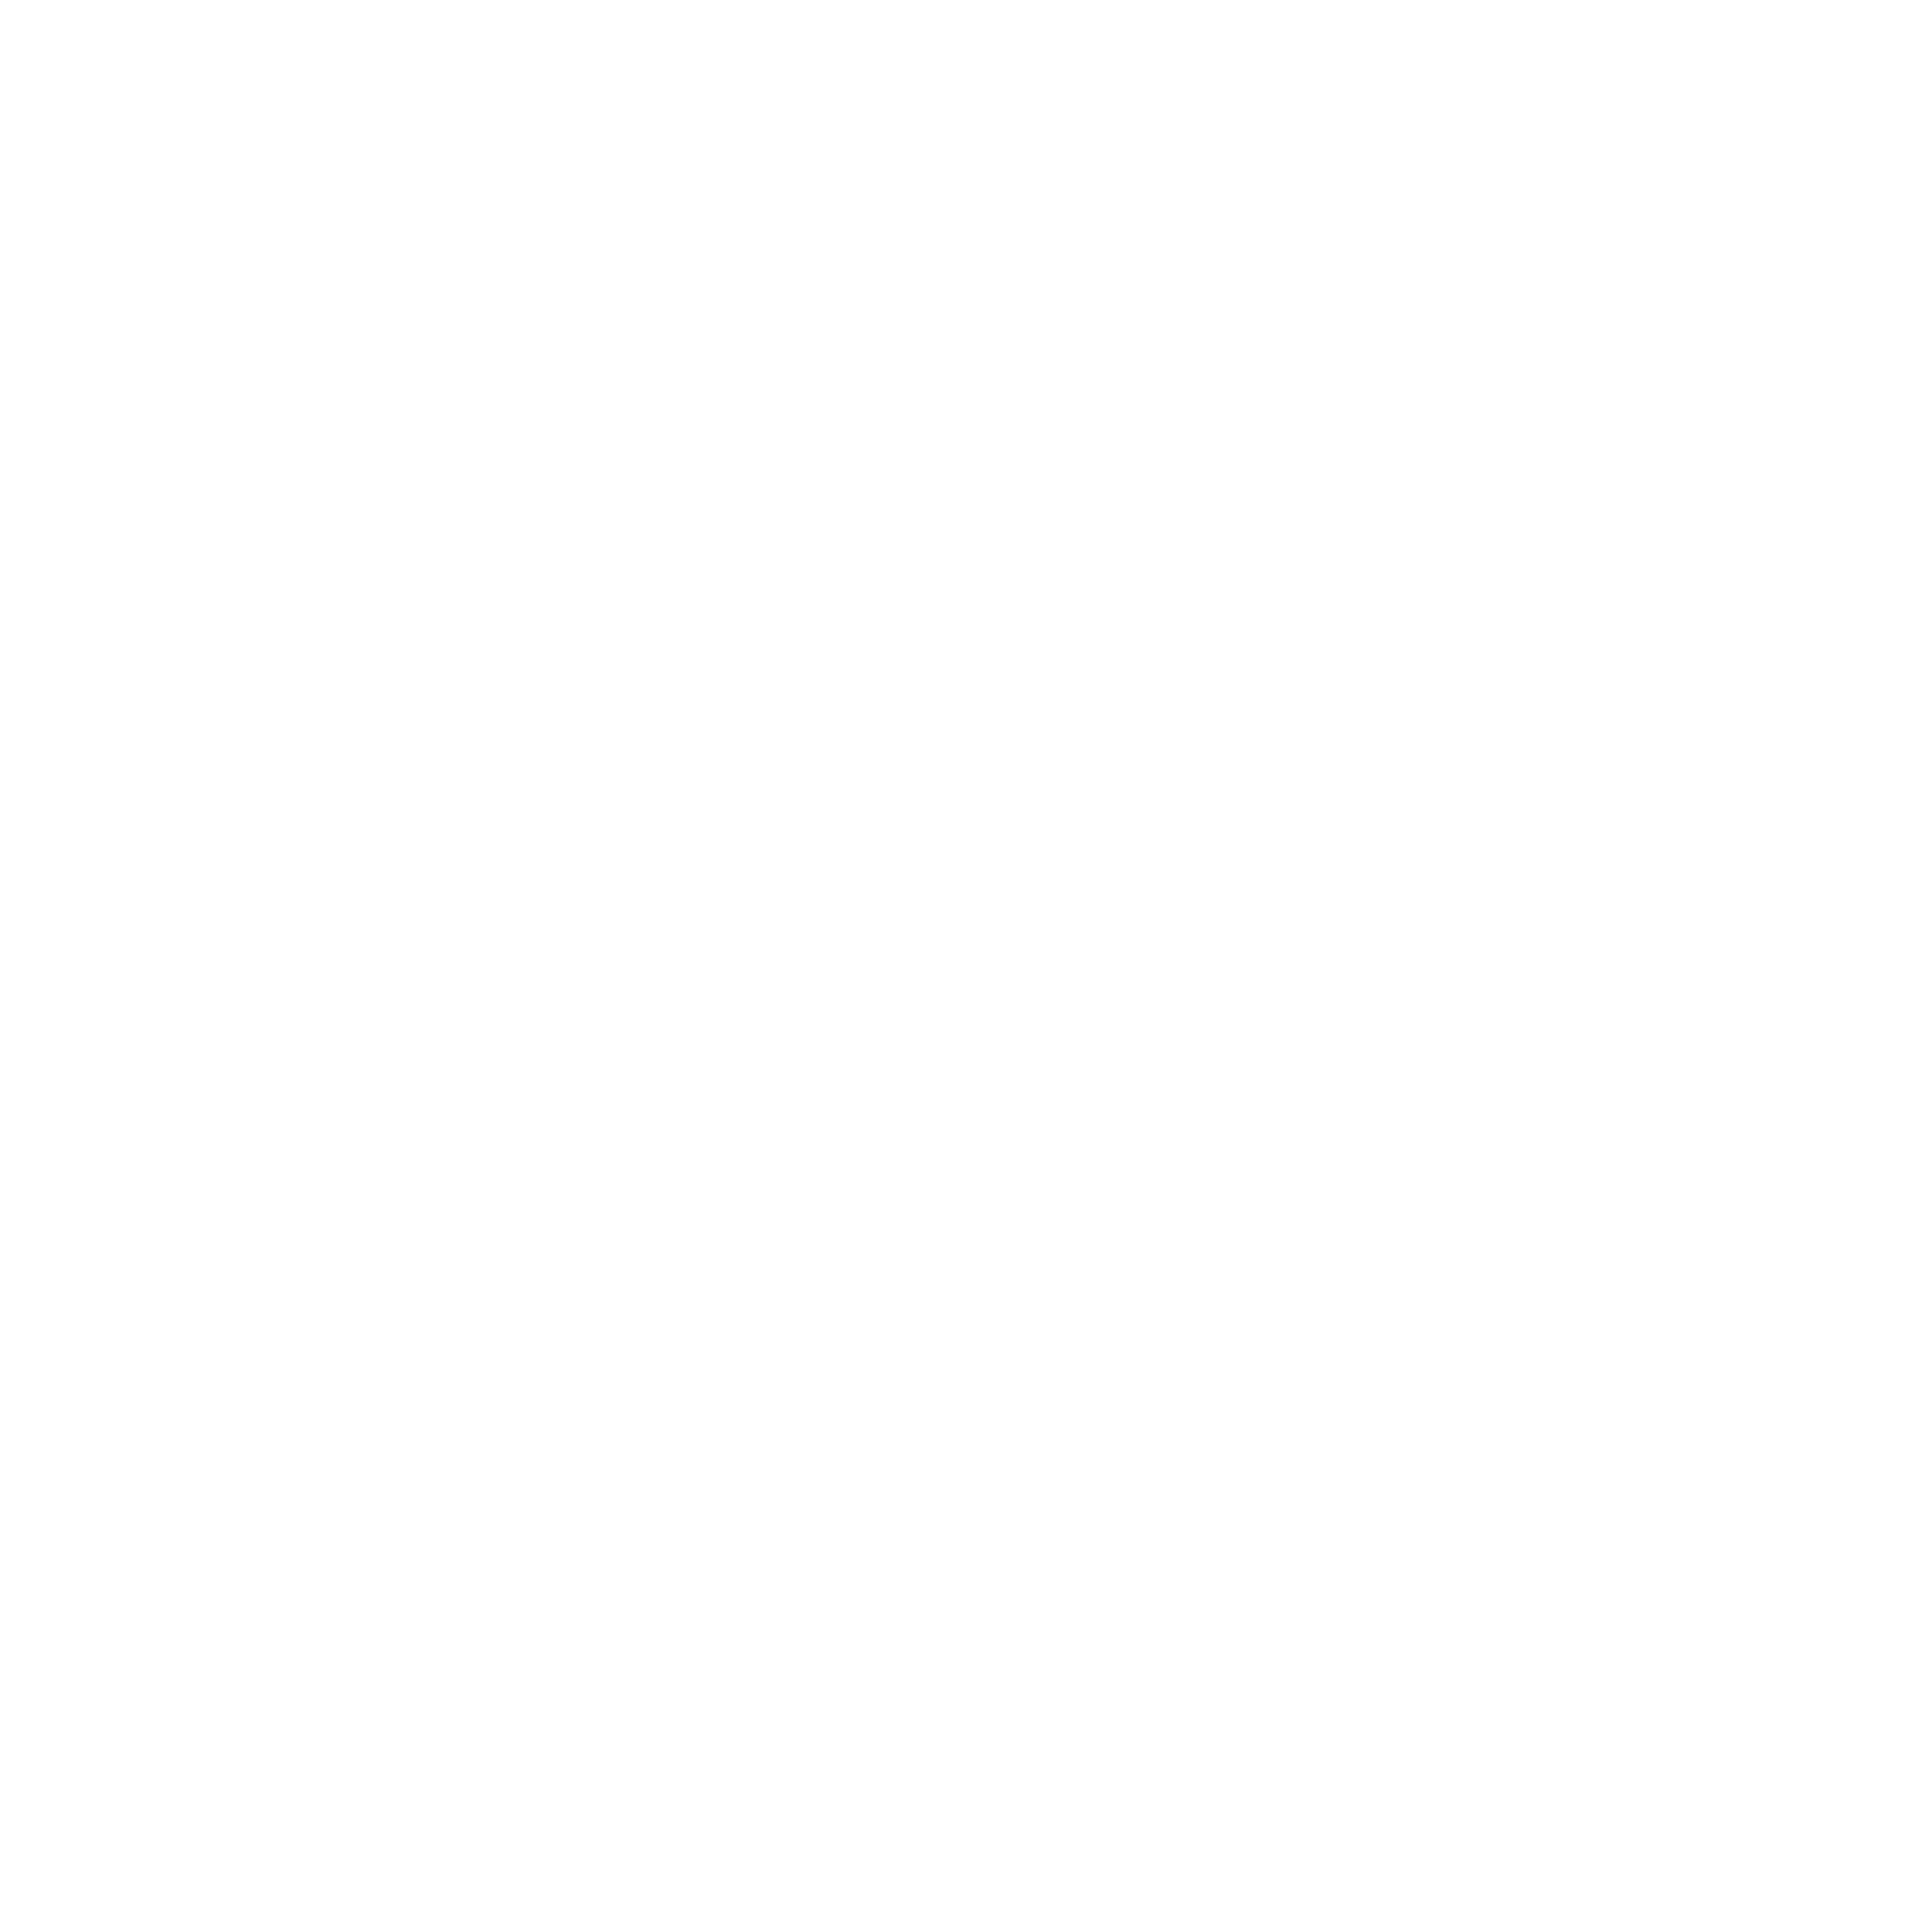 White lace frame png. Europe pattern fresh transprent